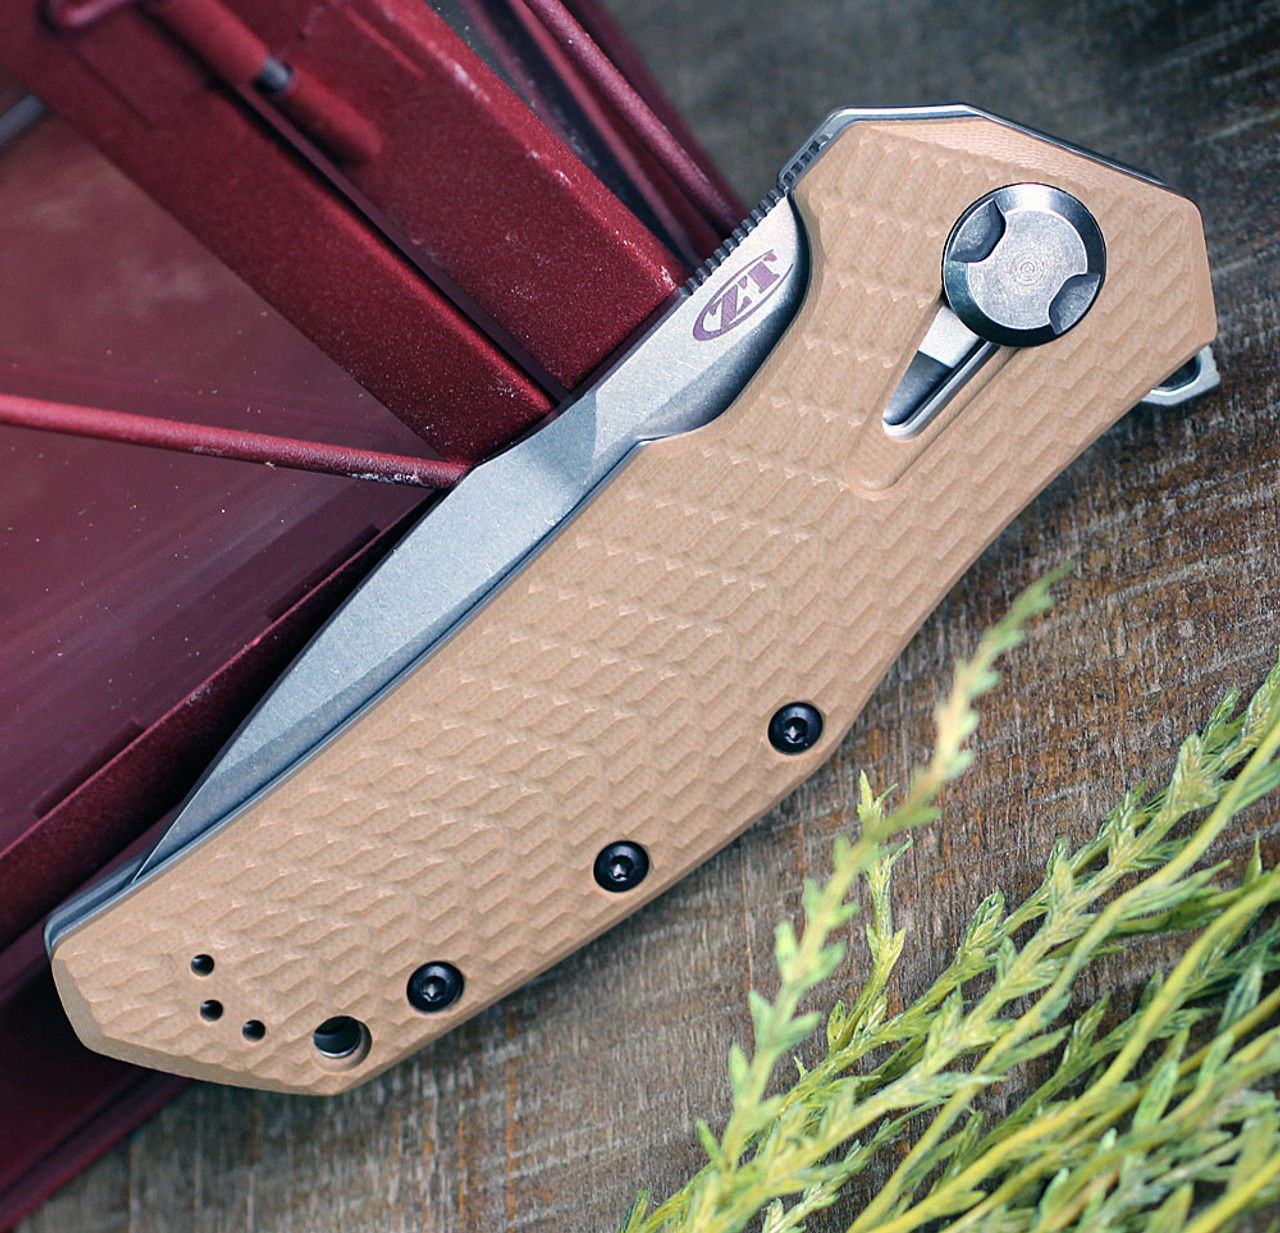 "Zero Tolerance 0308 Framelock Folder, 3.75"" CPM-20CV Stonewash Drop Point Plain Blade, Coyote Brown G-10 Handle"